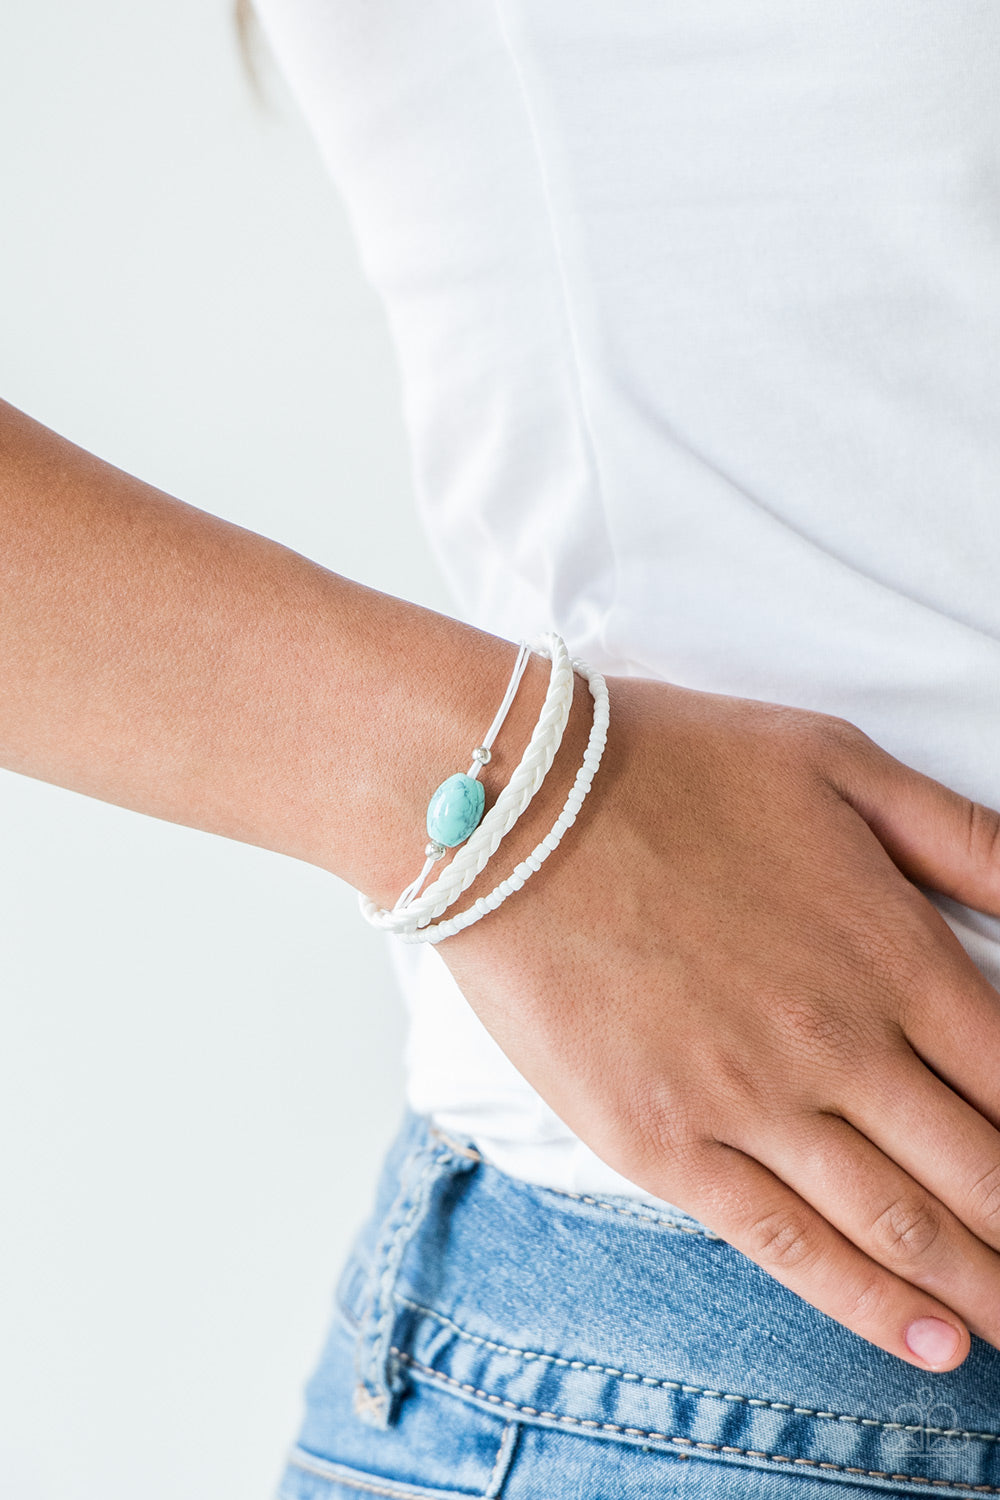 Weekend Wanderer - White Leather with White Beads and a Center Turquoise Stone